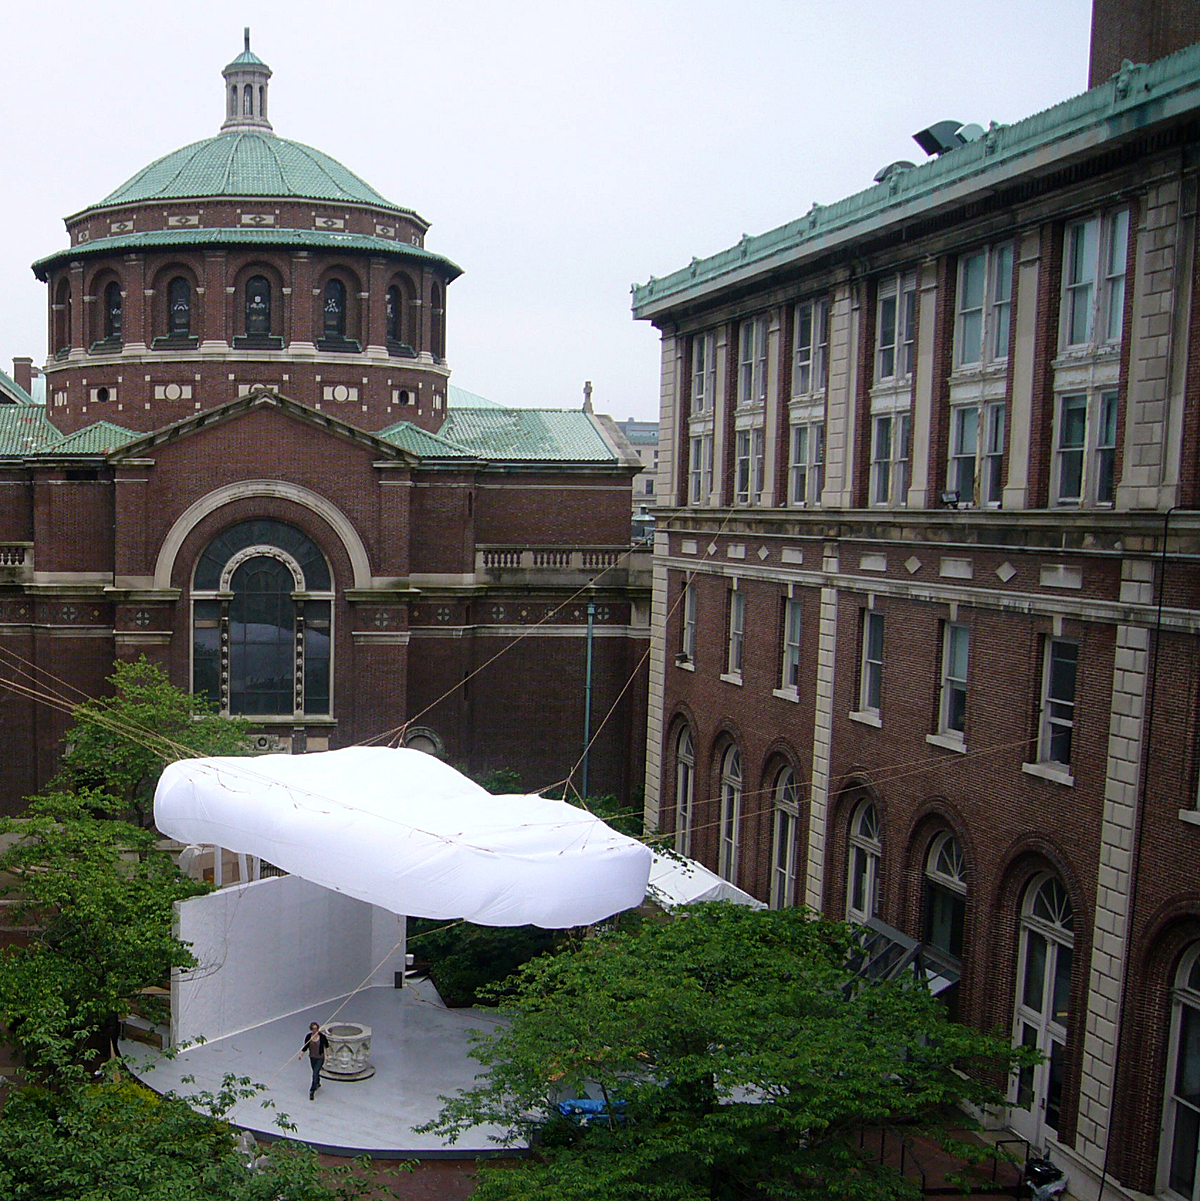 BOB, an inflatable cloud above a public bathroom and forum, the result of a pedagogical experiment involving graduate art and architecture students at Columbia University